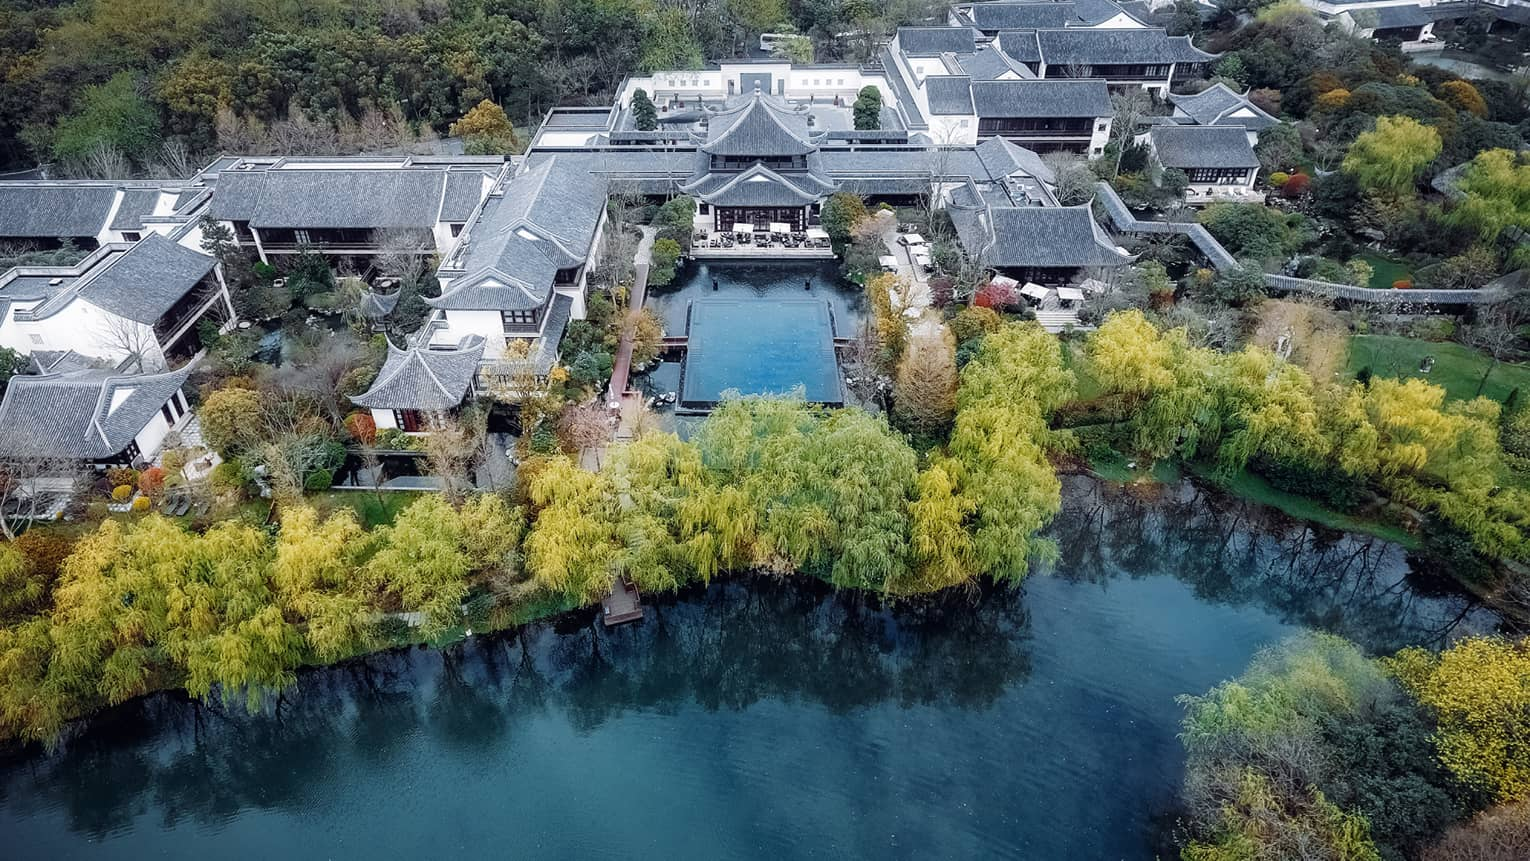 Aerial view of Four Seasons Hotel Hangzhou village-like resort on water